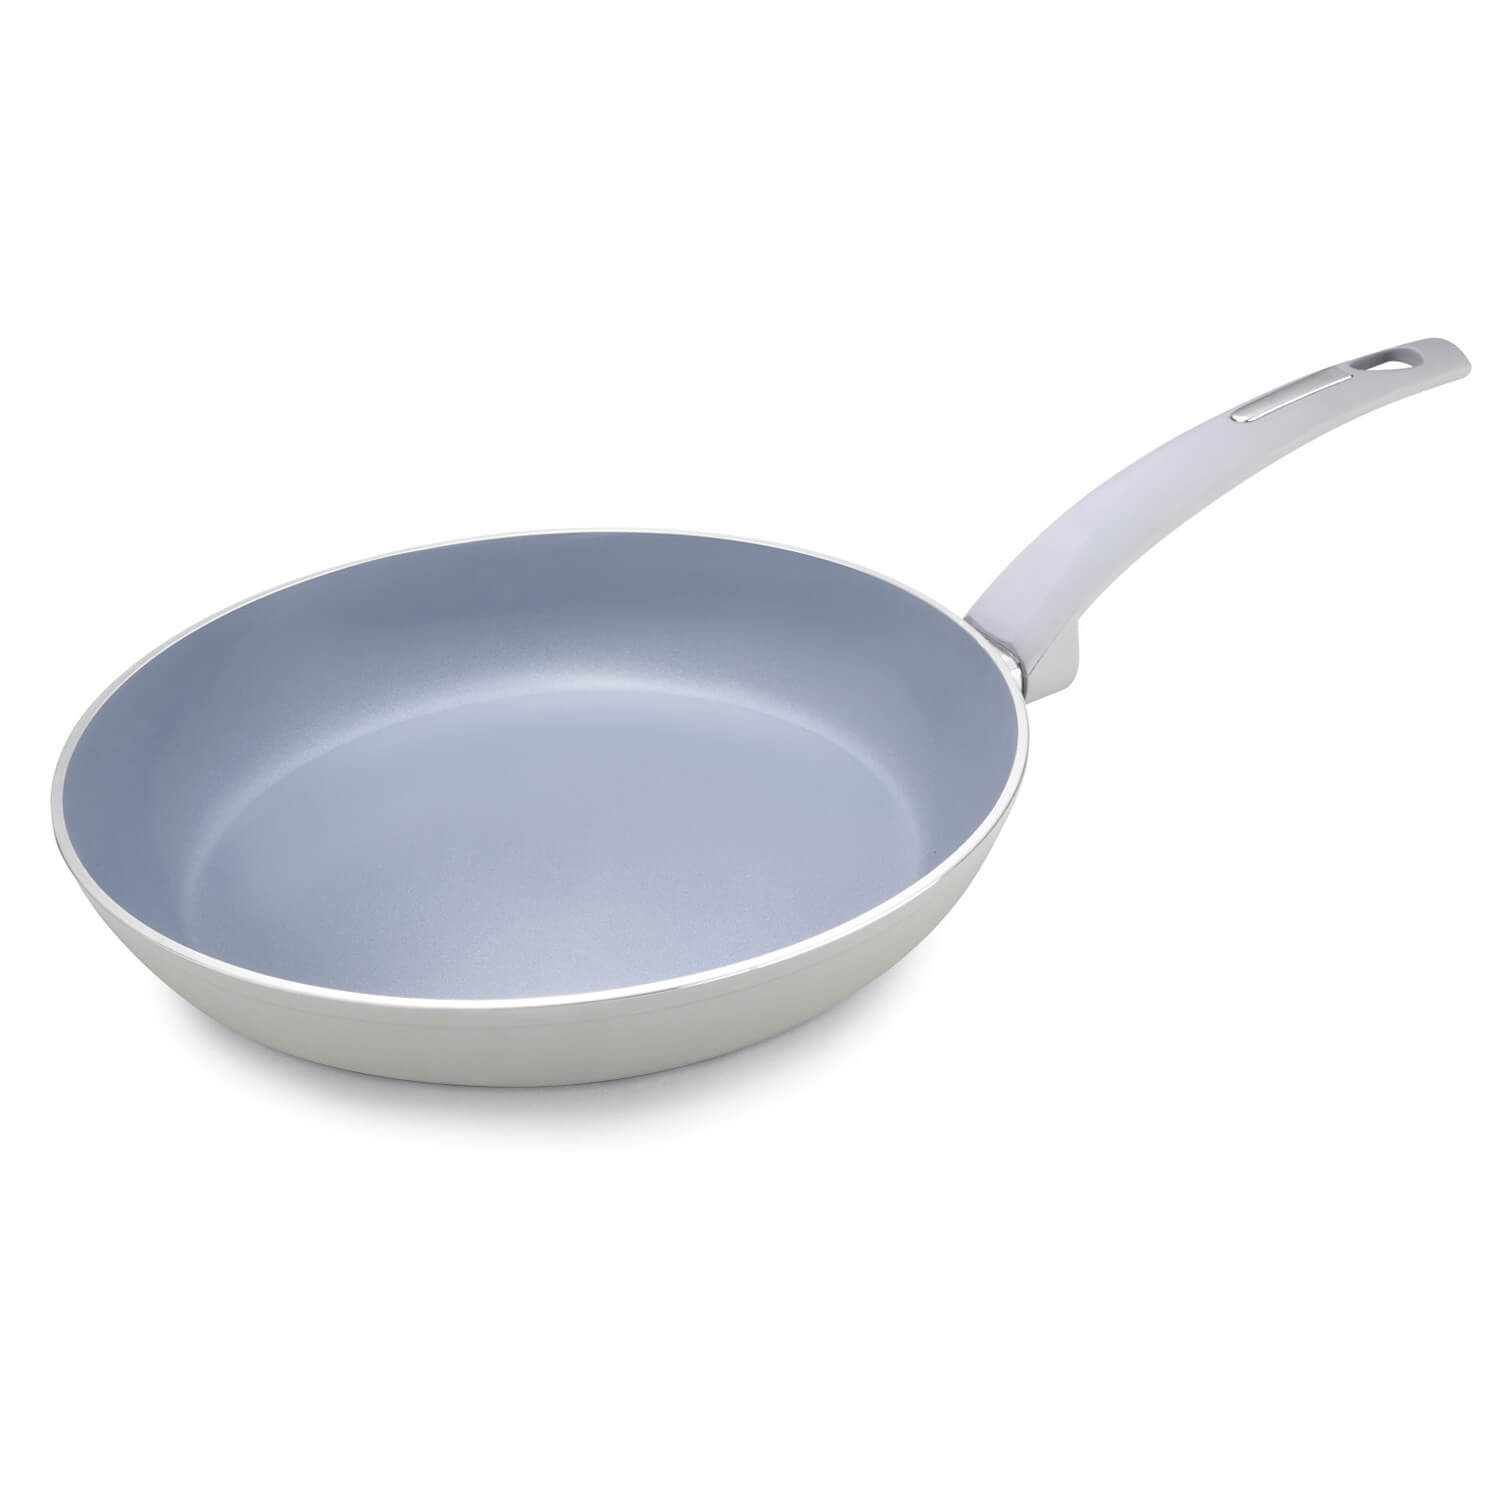 Top Quality Forged Aluminum Nonstick Fry Pan For Home